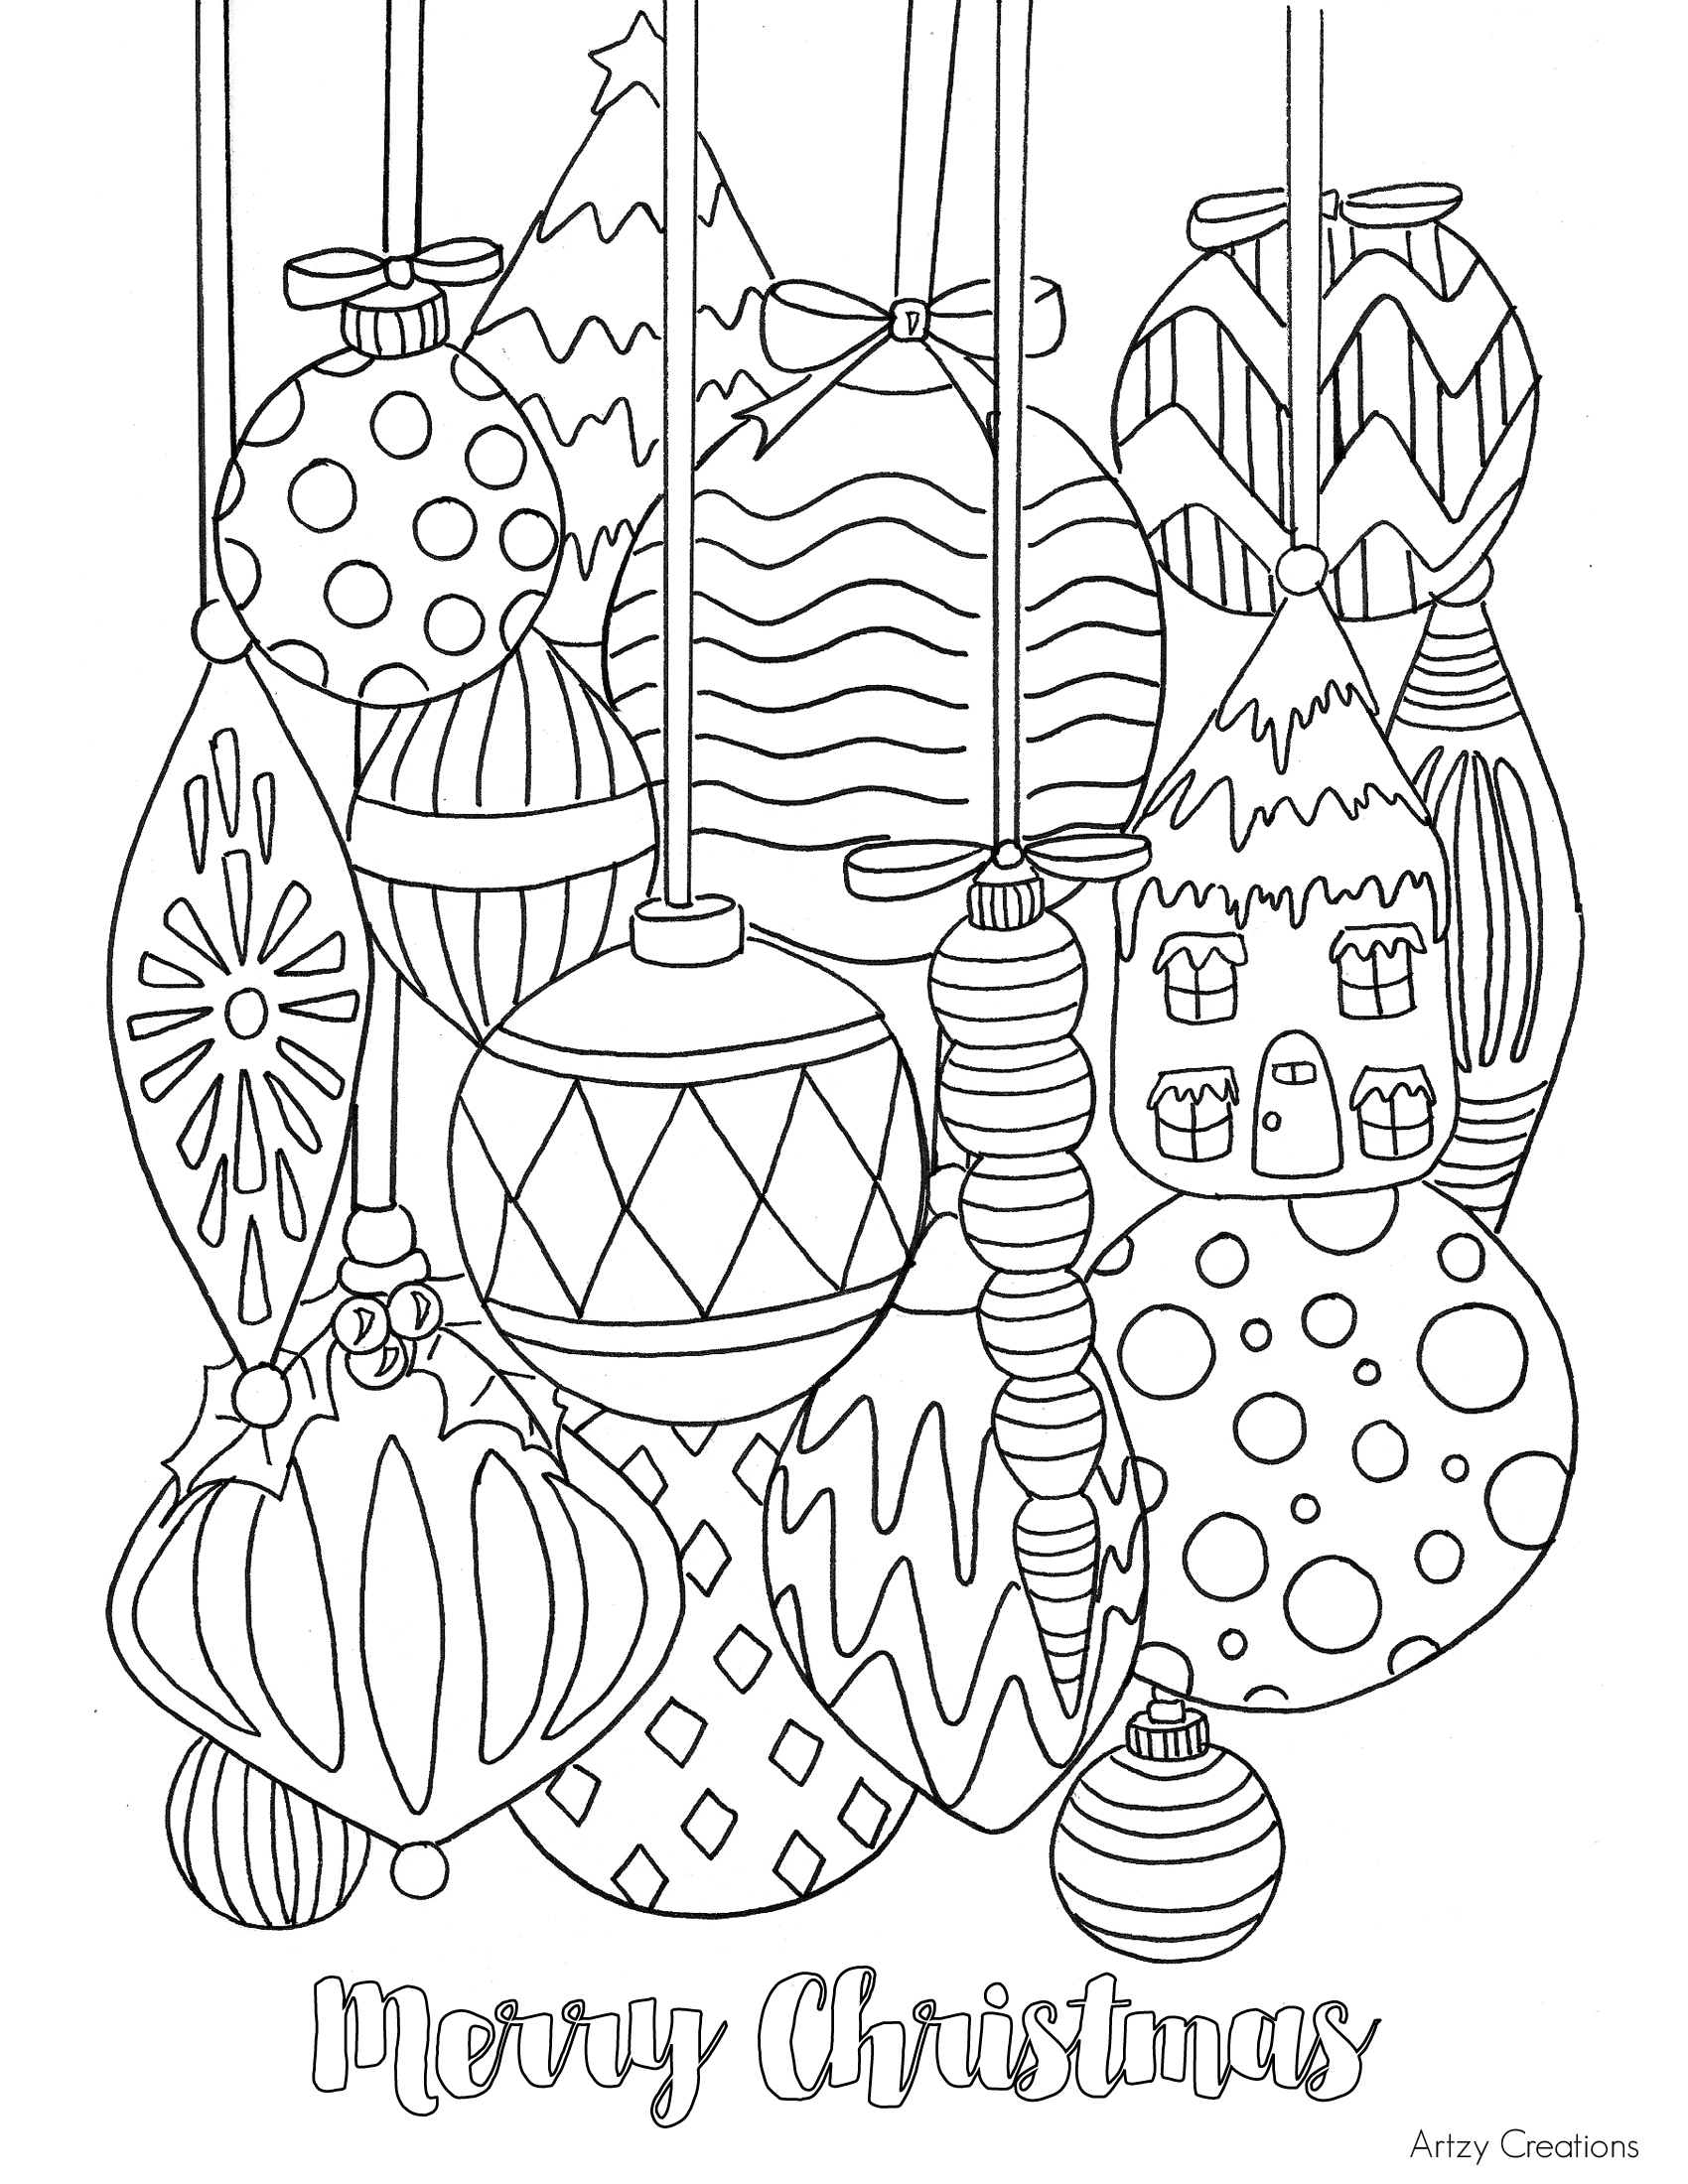 download your free christmas ornament coloring page here